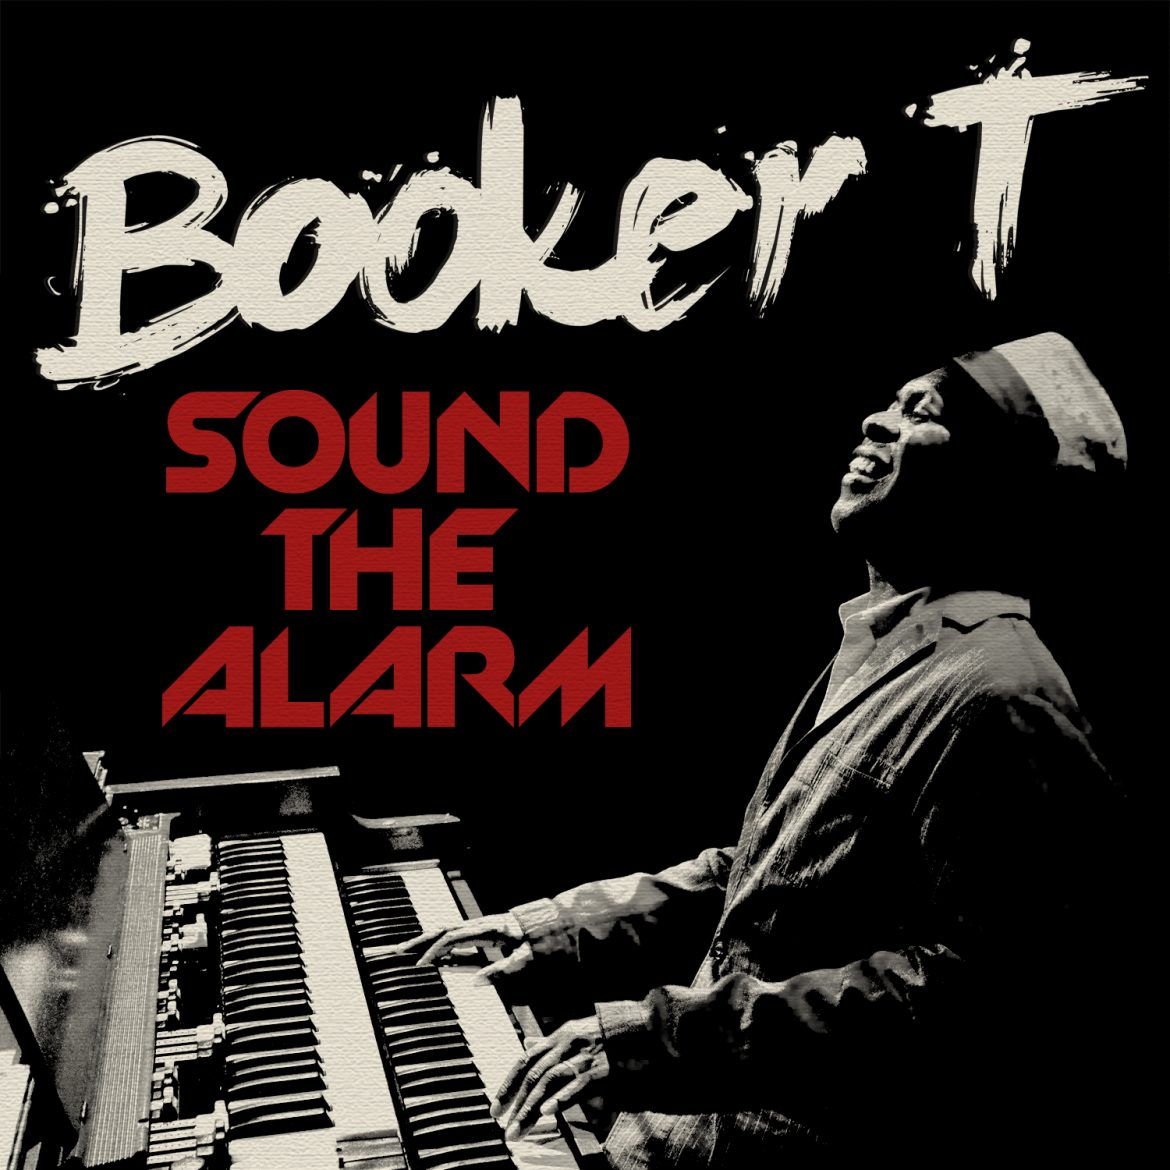 Booker T. Jones Sound the Alarma, nuevo disco 2013